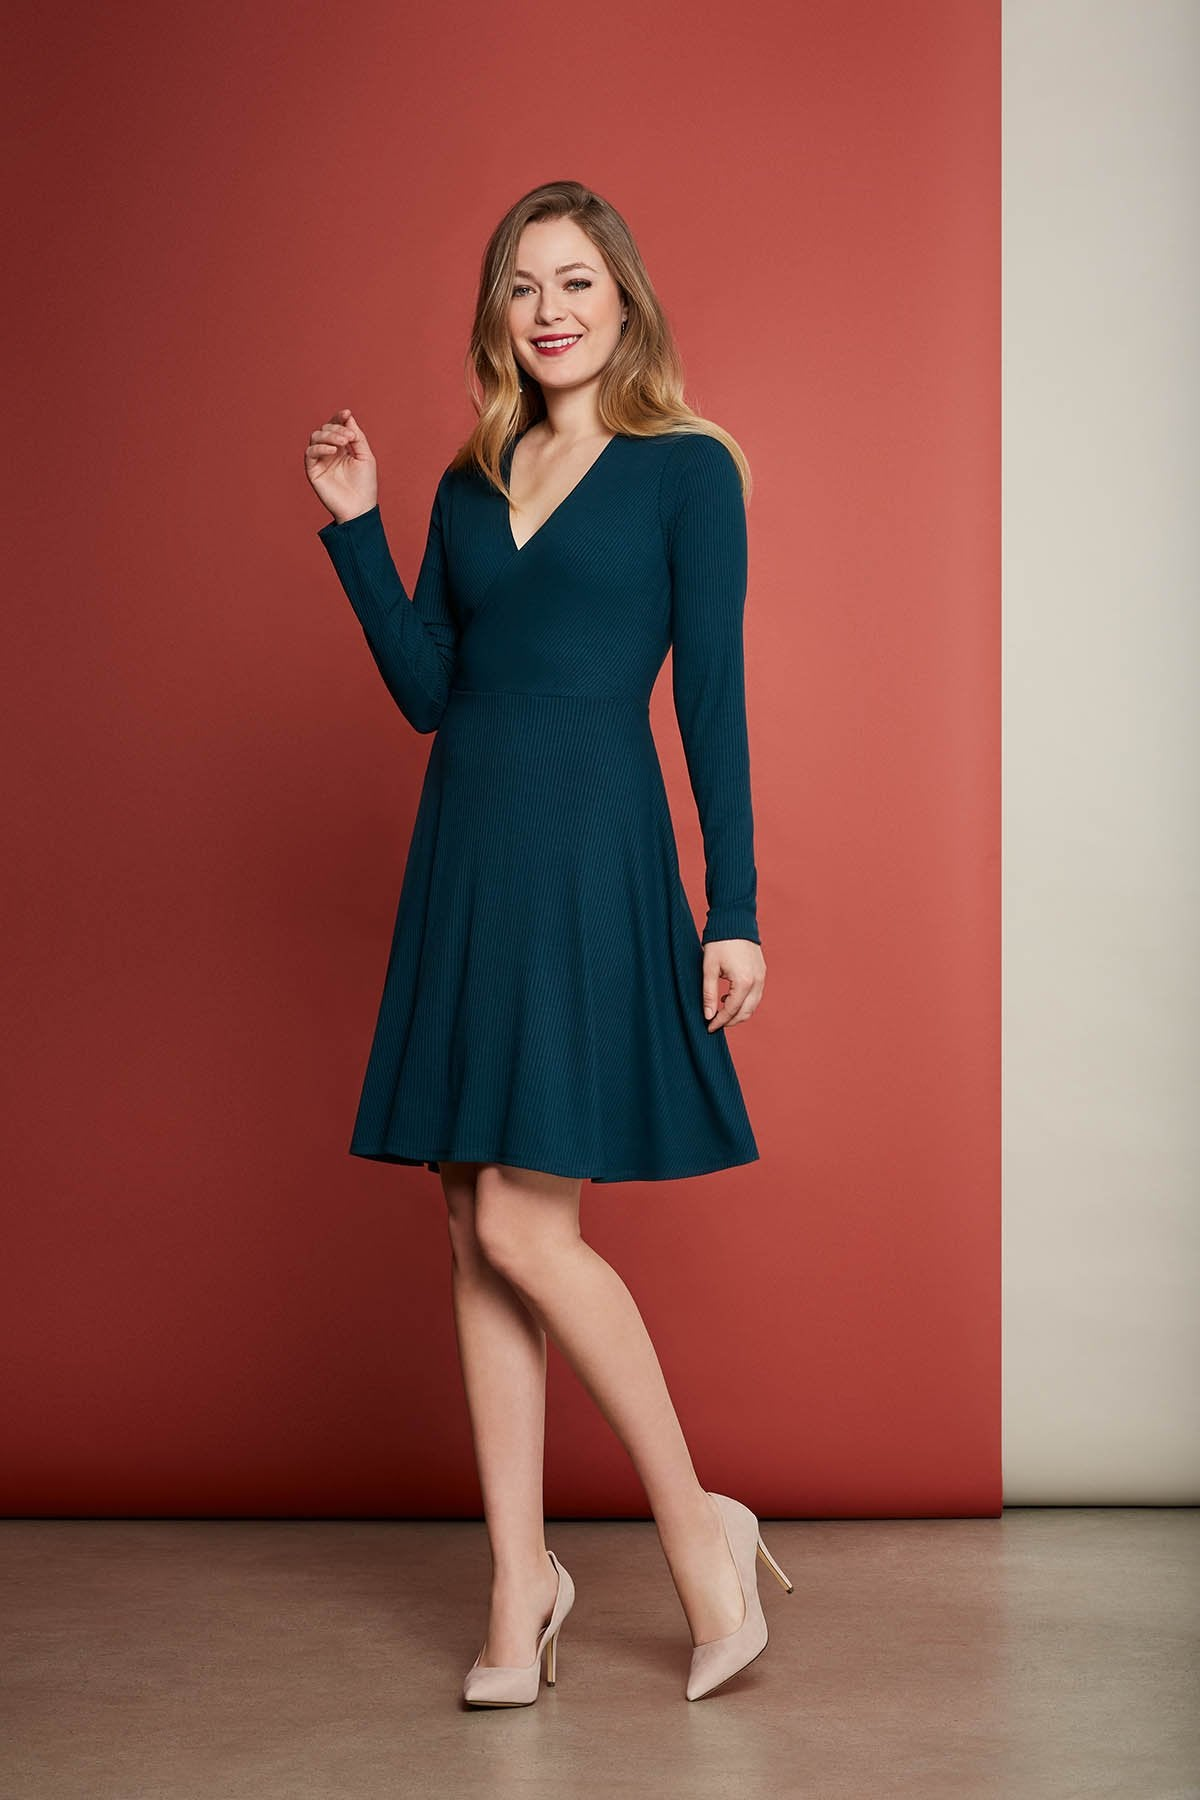 Vera dress by Cherry Bobin in Turquoise; bamboo ribbed knit wrap dress; long sleeved, mid-length; styled with nude high heels